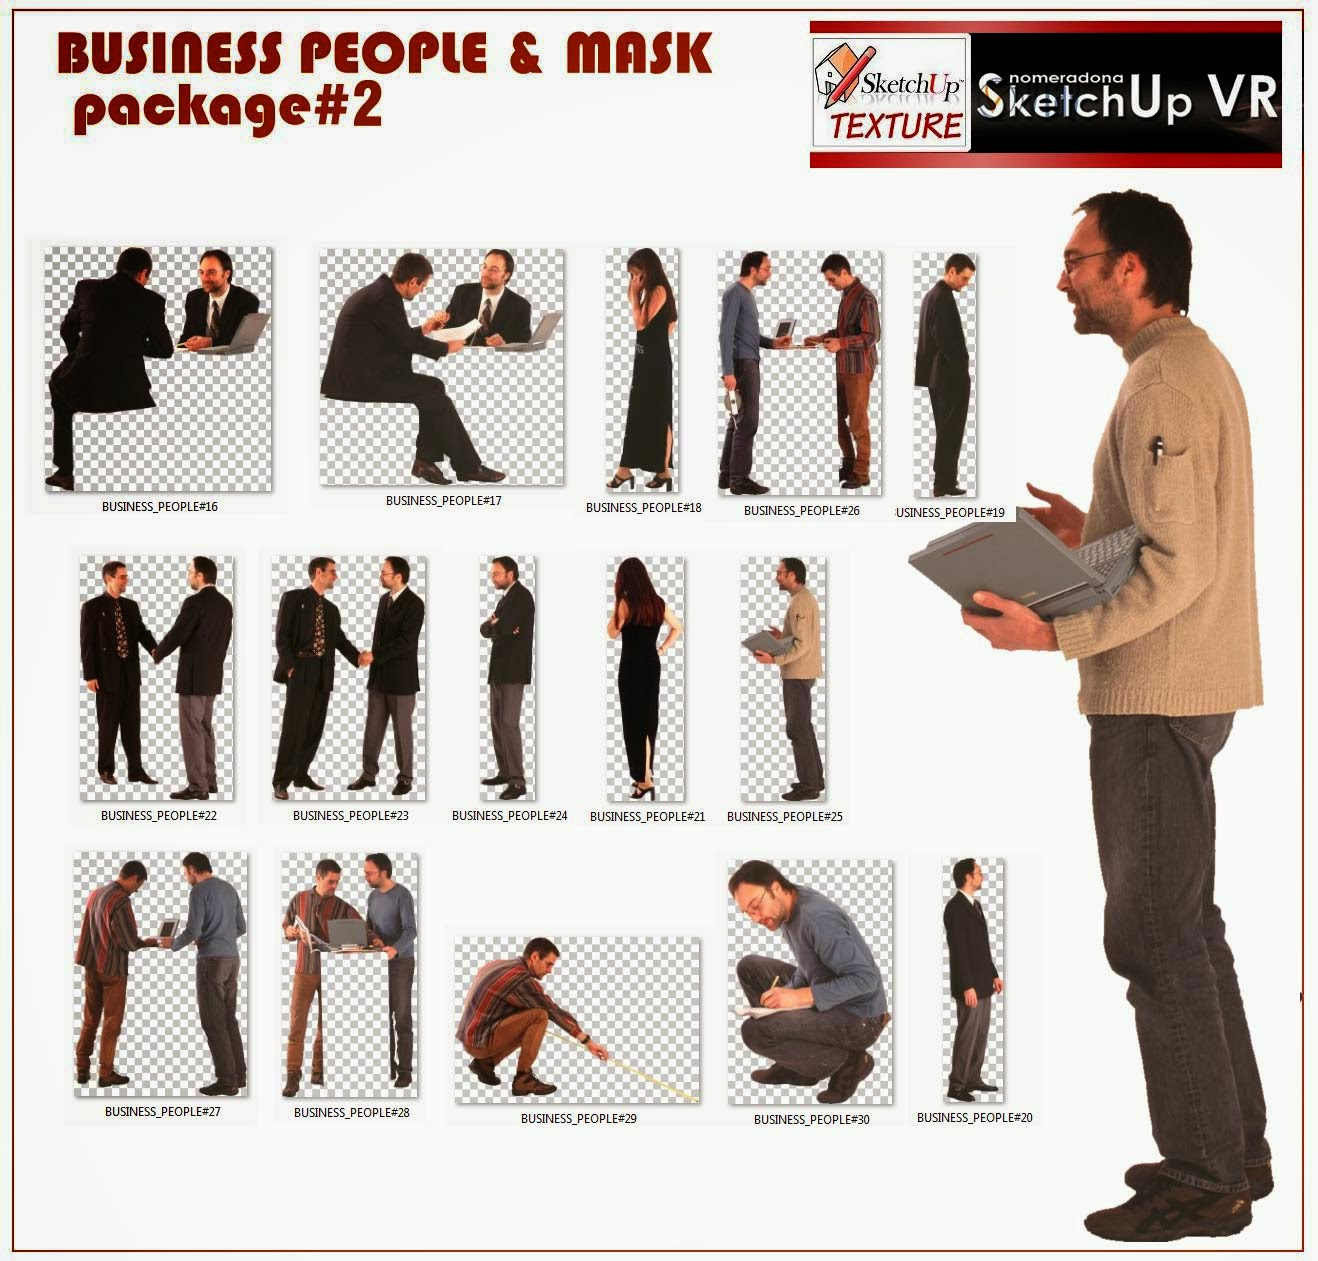 sketchup texture cut out people